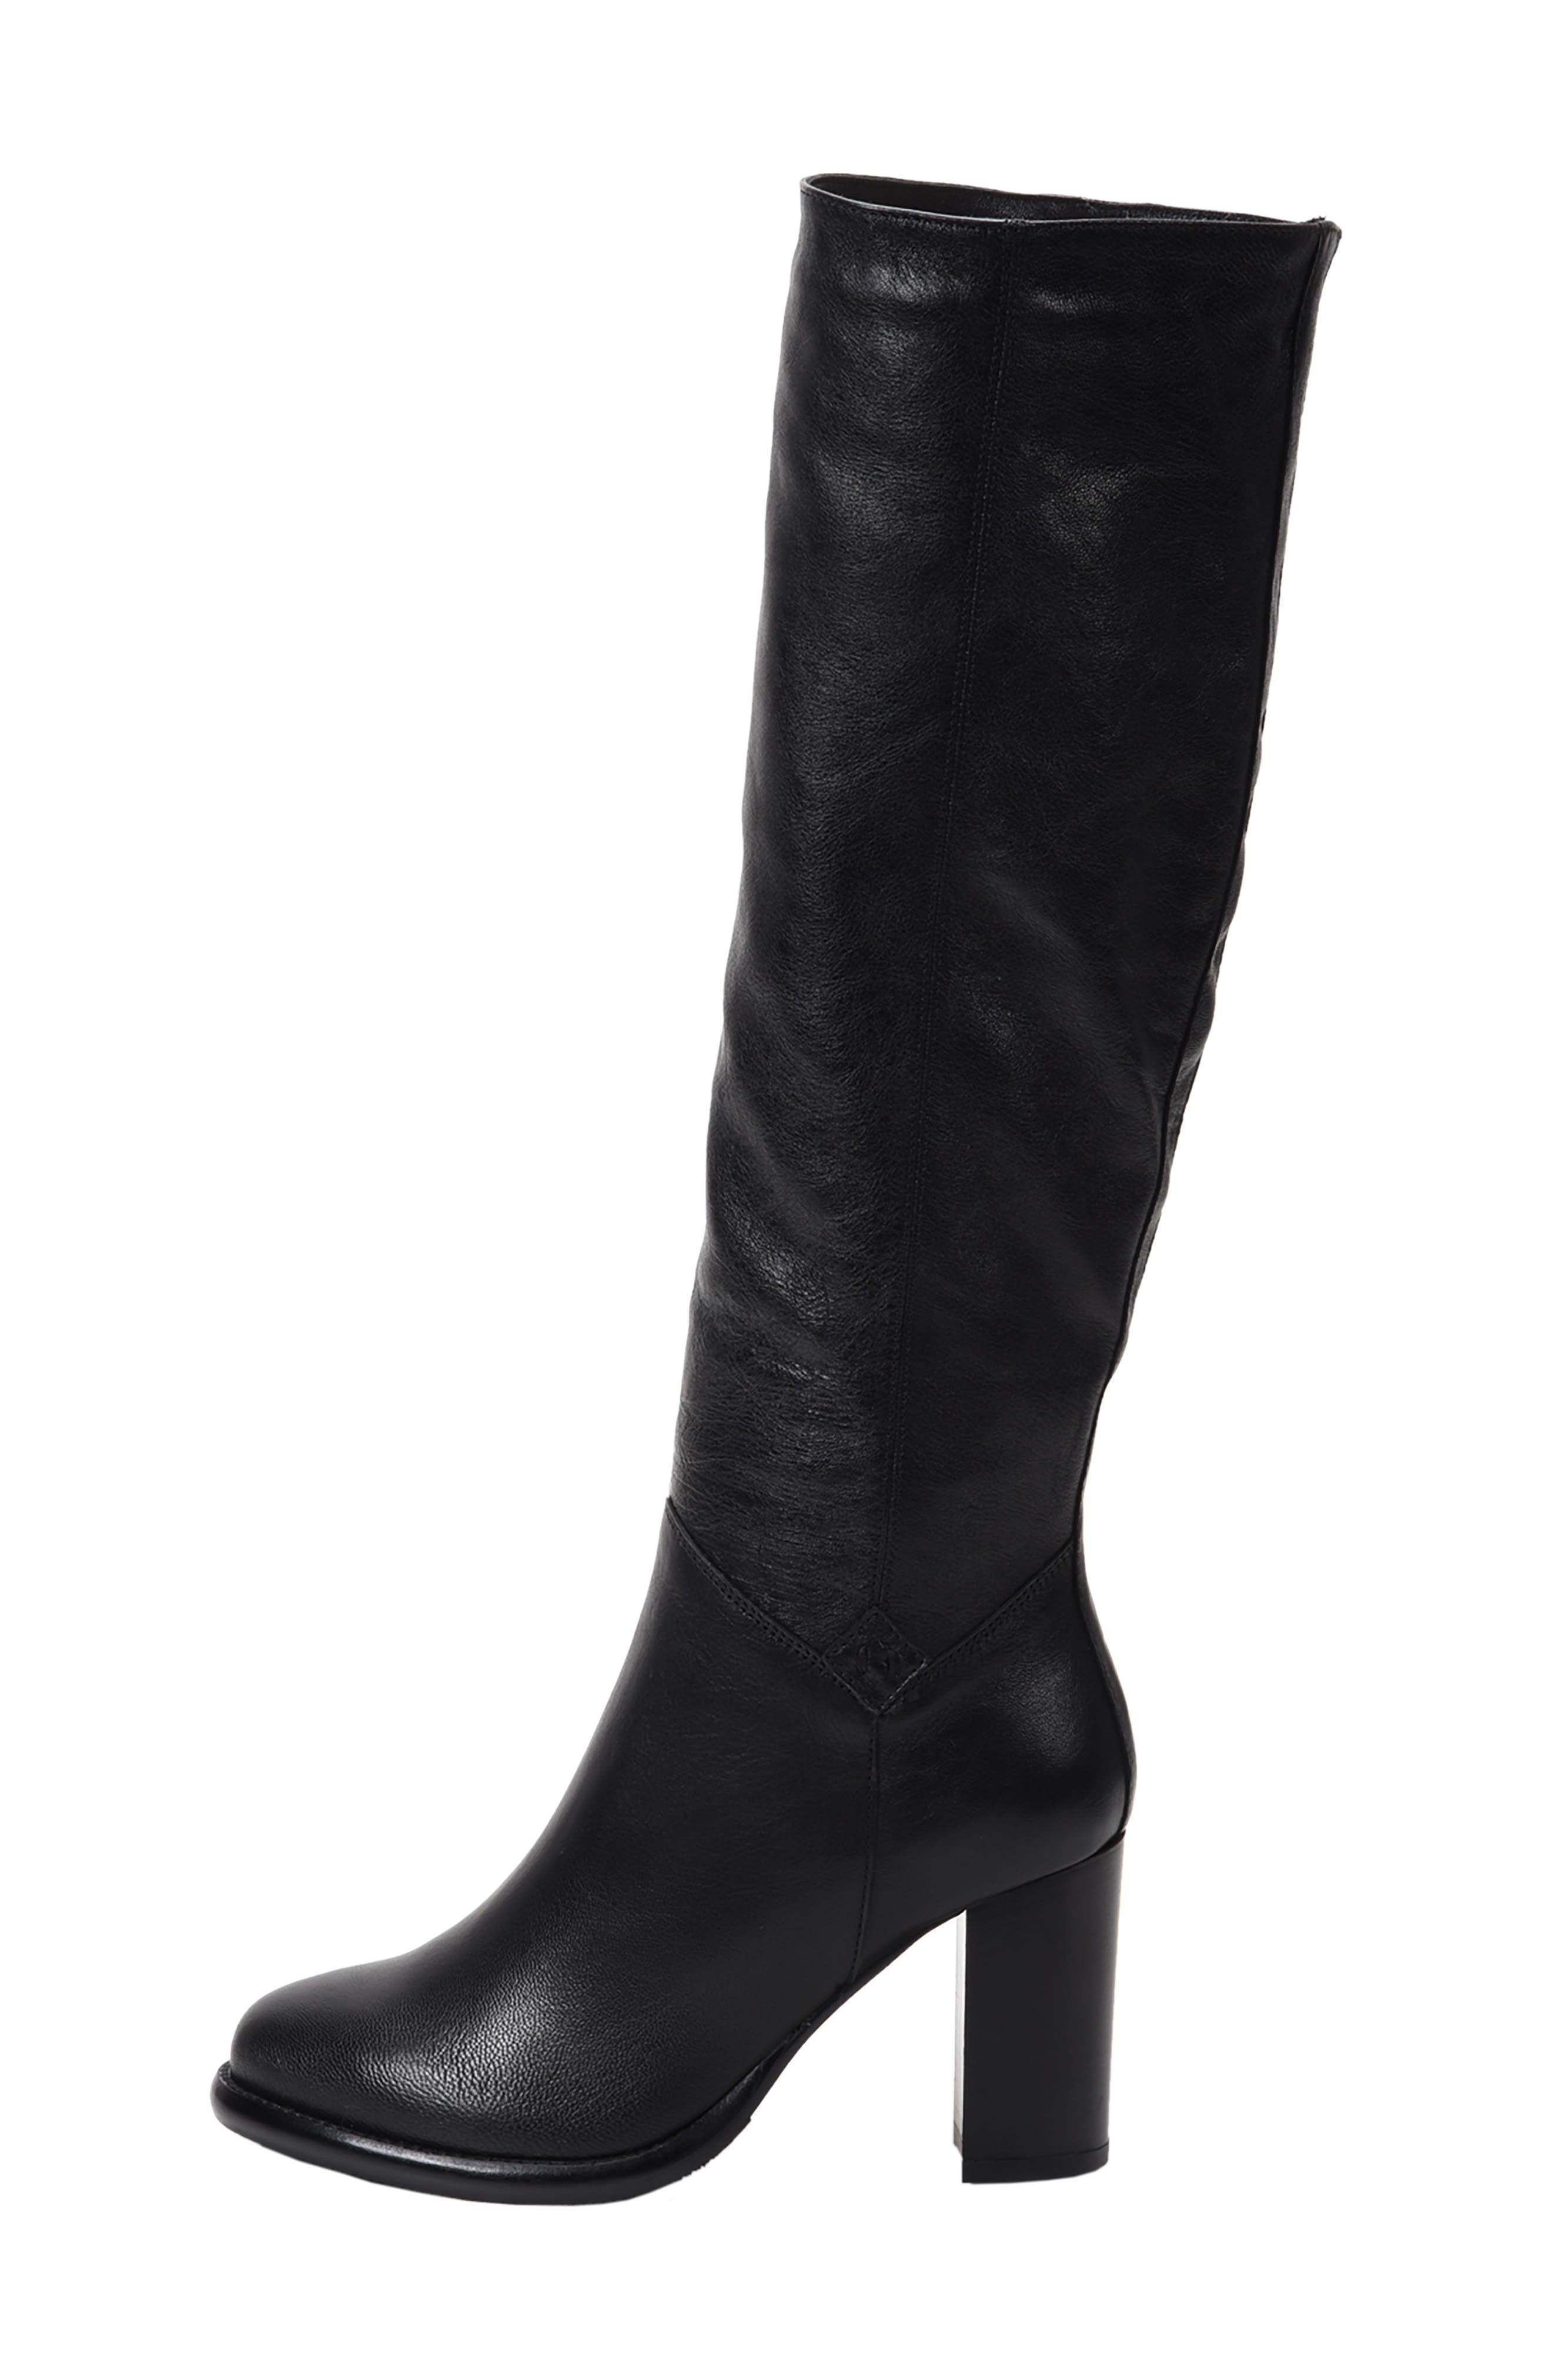 ROSS & SNOW, Michela SP Waterproof Genuine Shearling Lined Boot, Alternate thumbnail 2, color, BLACK METALLIC LEATHER